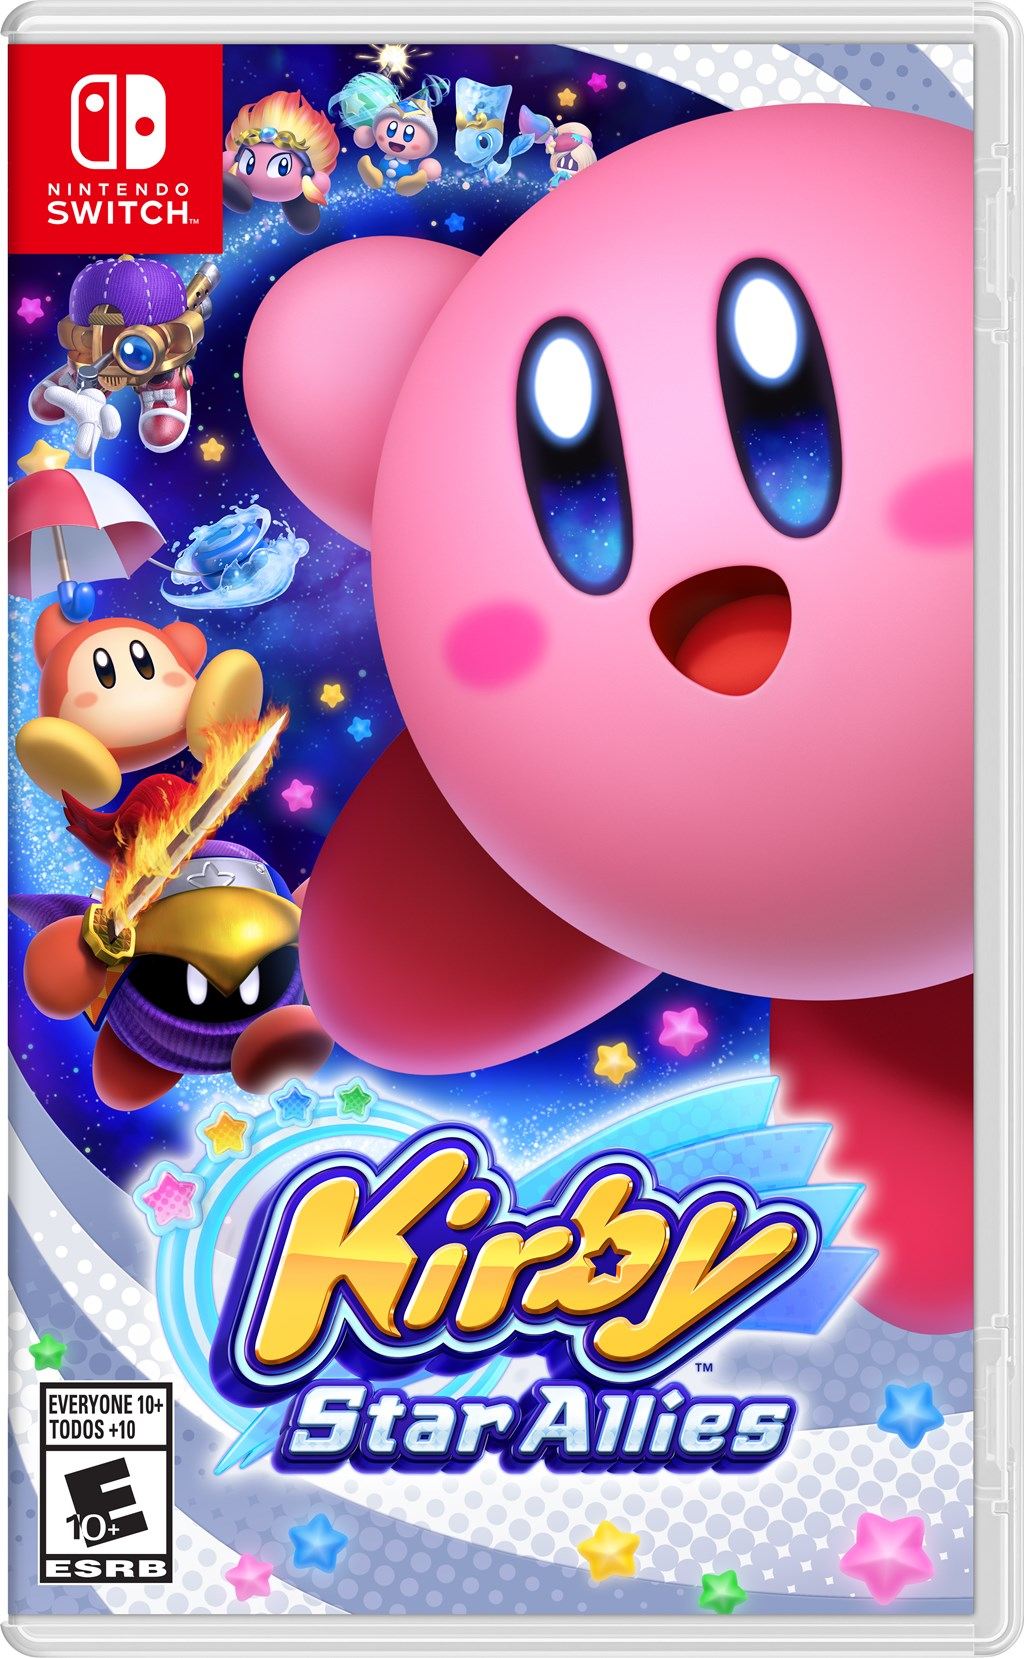 Kirby Star Allies | Kirby Wiki | FANDOM powered by Wikia